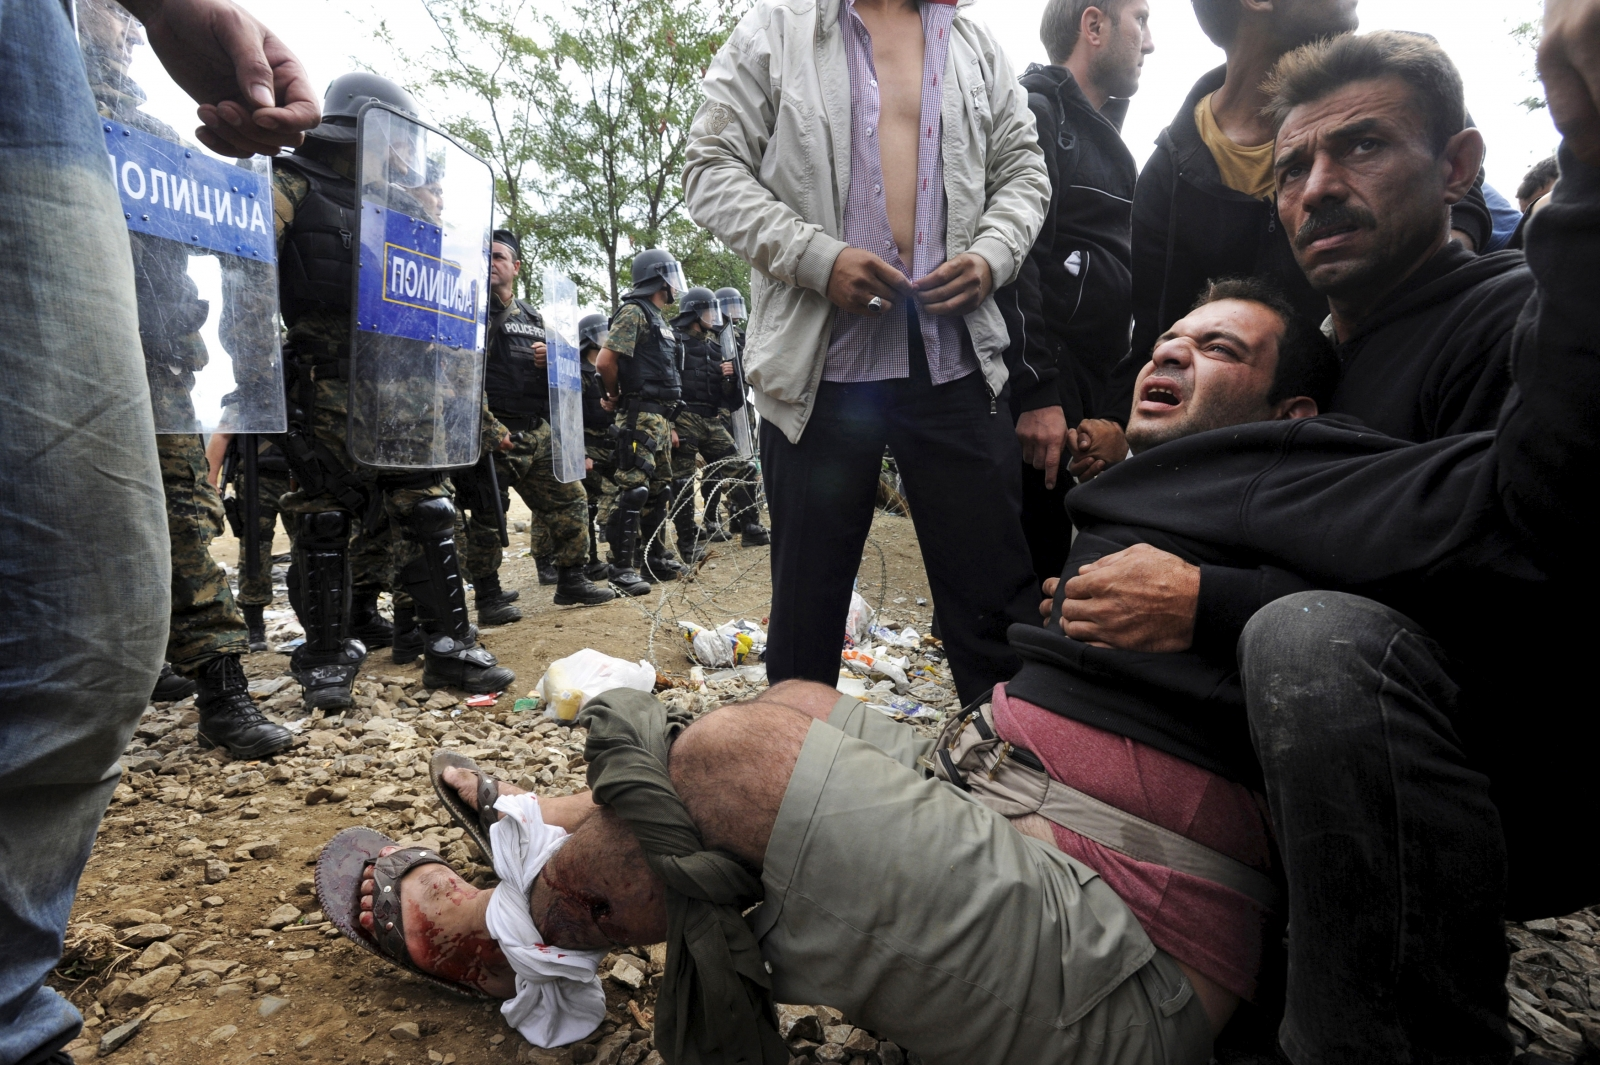 Macedonia tear gas migrants Greece